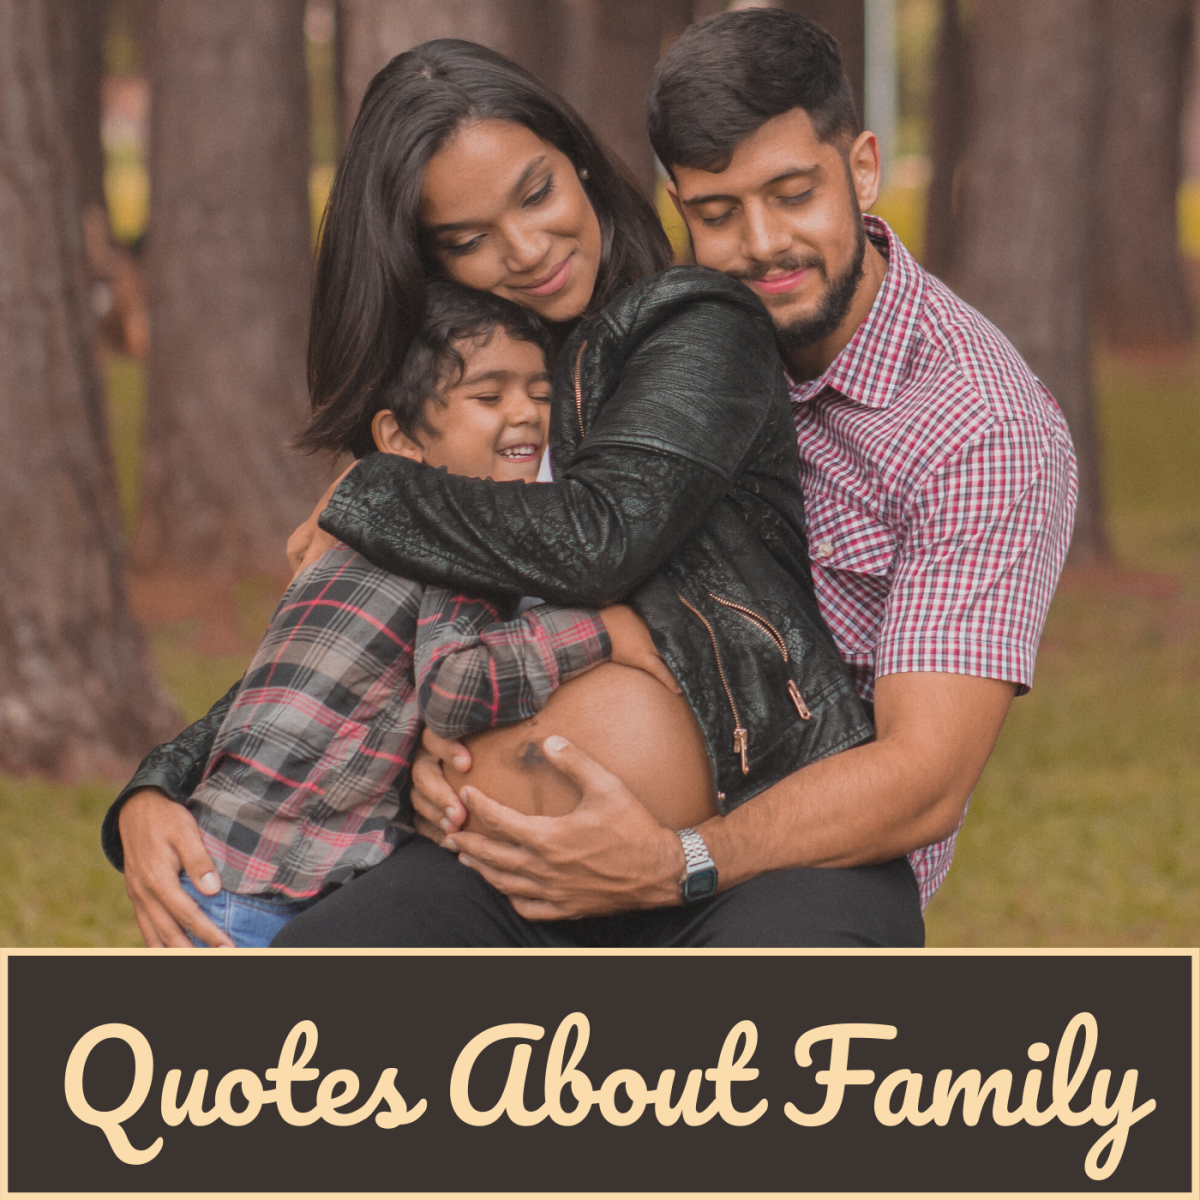 Family is so important. Enjoy this collection of quotes from writers, artists, thinkers, politicians, and others about the role of family in our world.